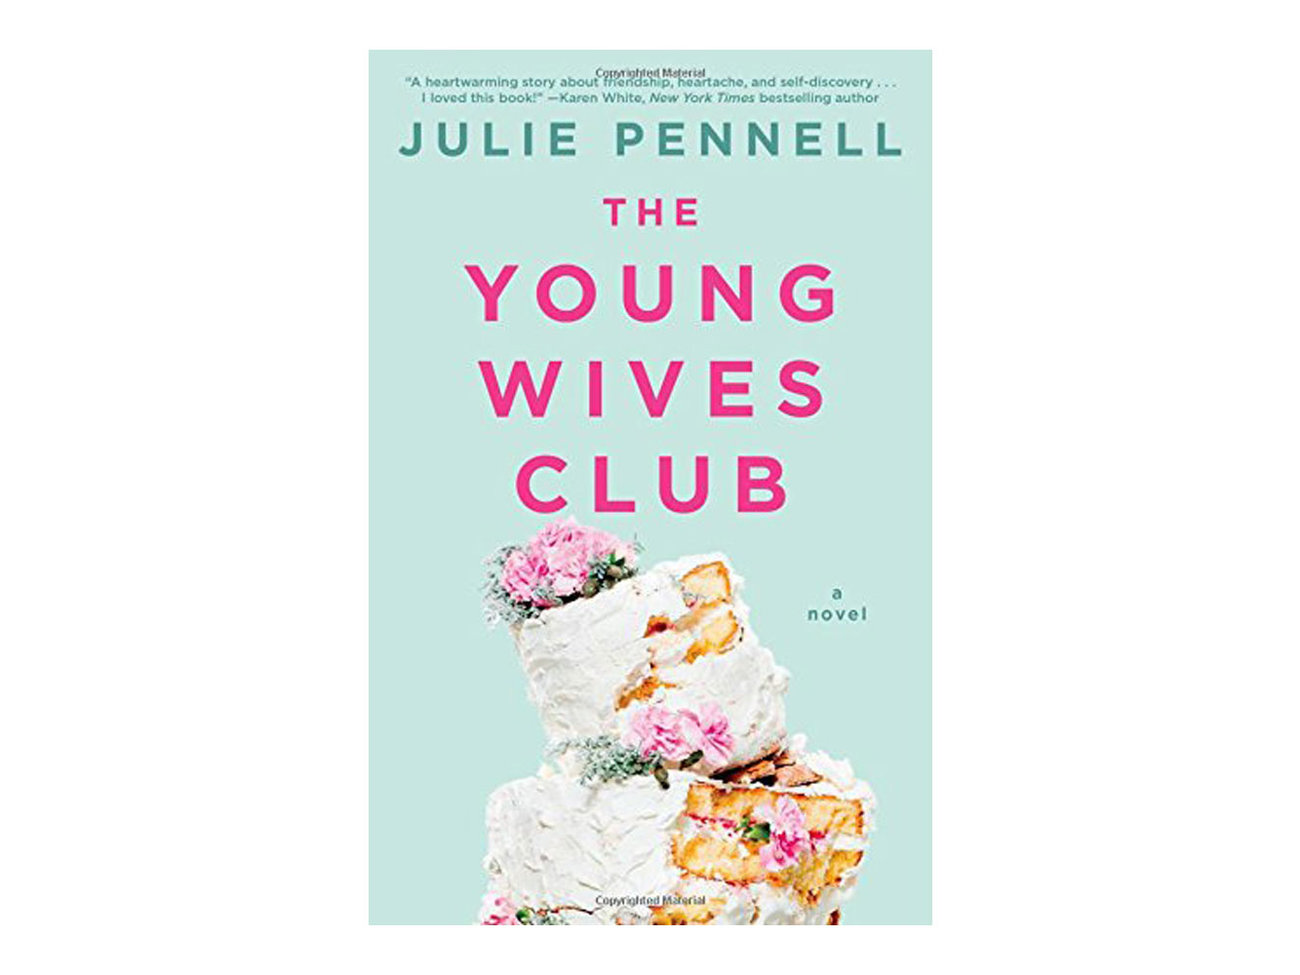 the-young-wives-club-amazon-SPRINGBOOK0317.jpg